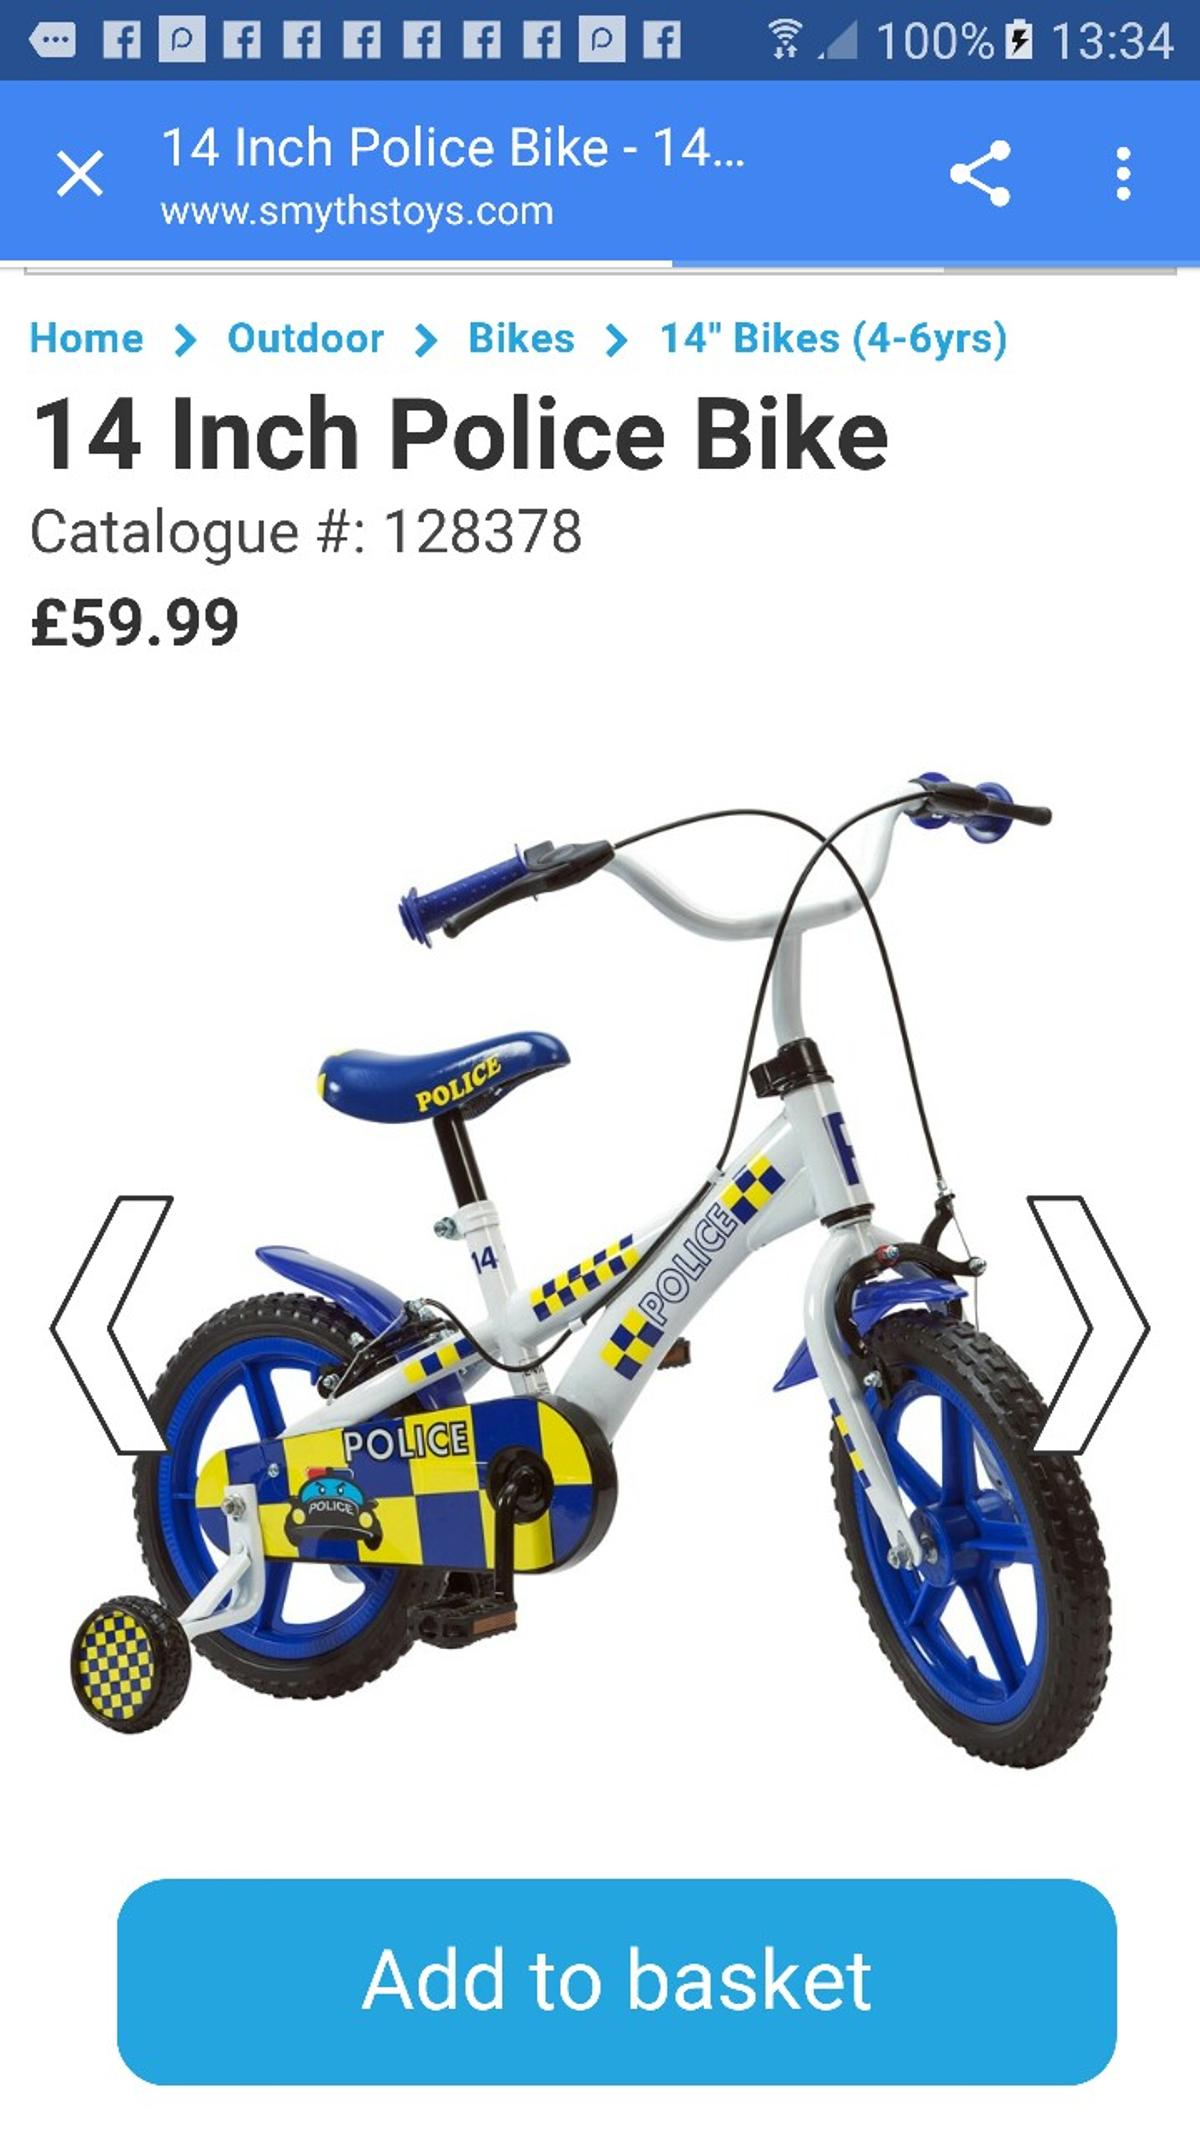 Police bike 14 inch comes with police siren in DY4 Tipton